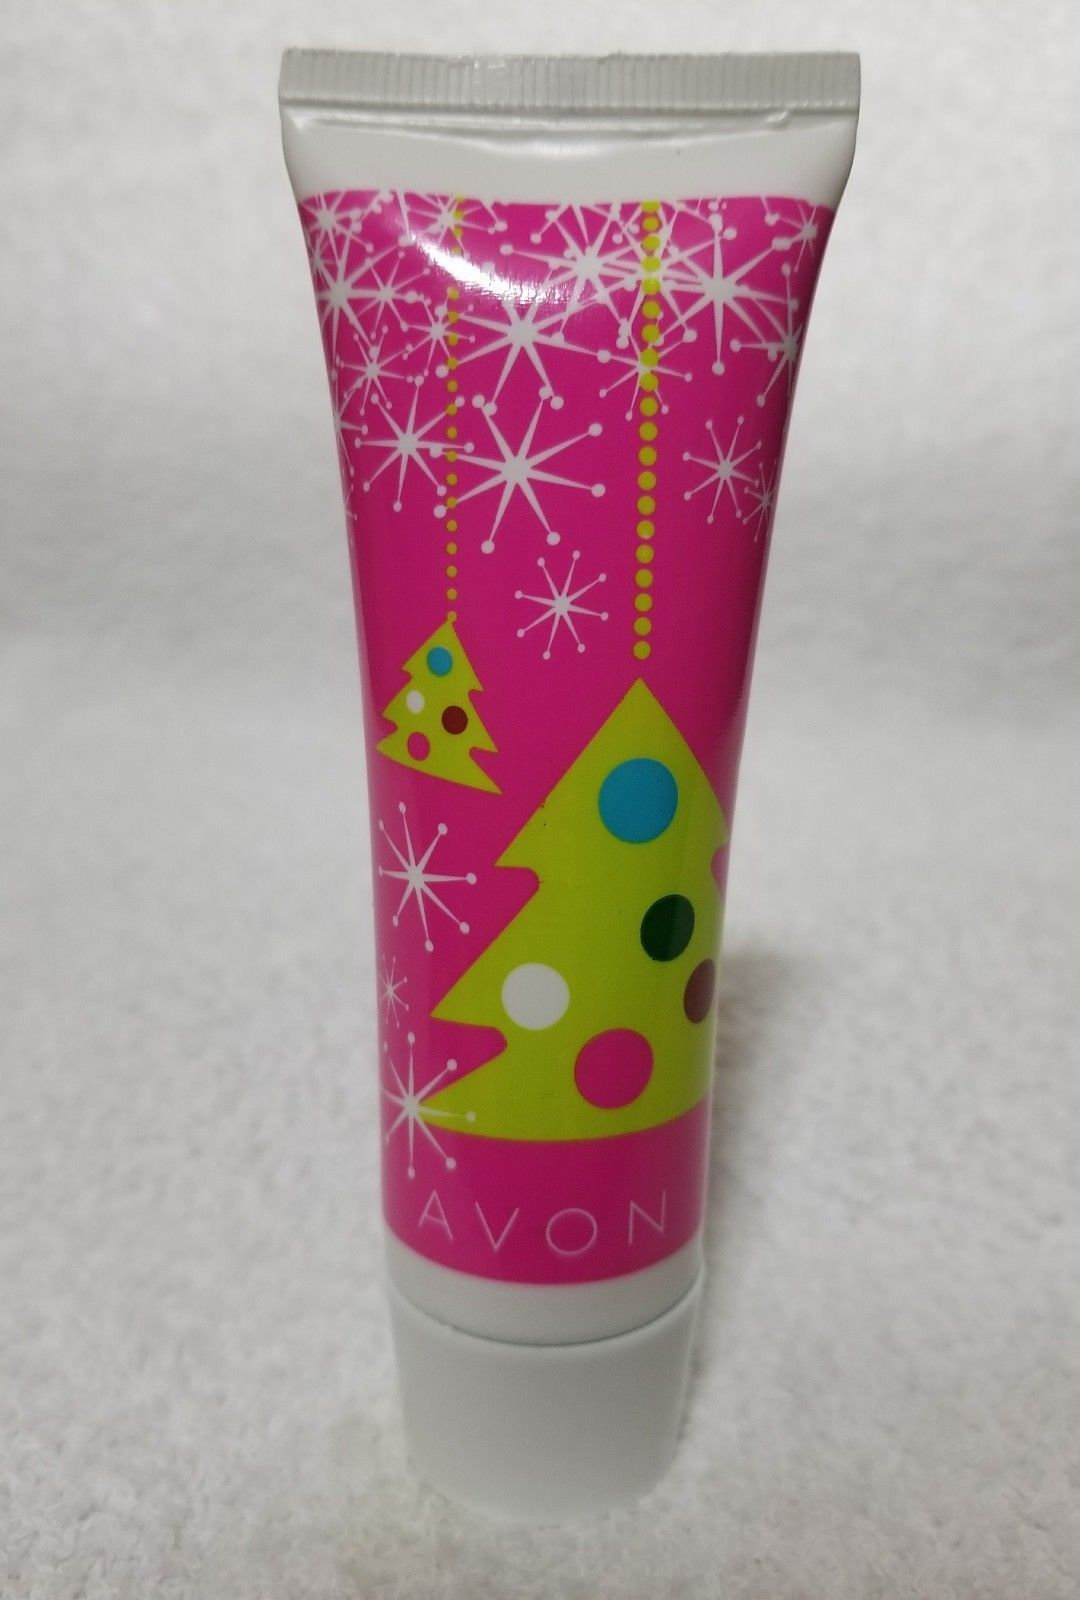 Avon Skin So Soft & Sensual REPLENISHING HAND CREAM Holiday Tube 1.5 oz/45mL New